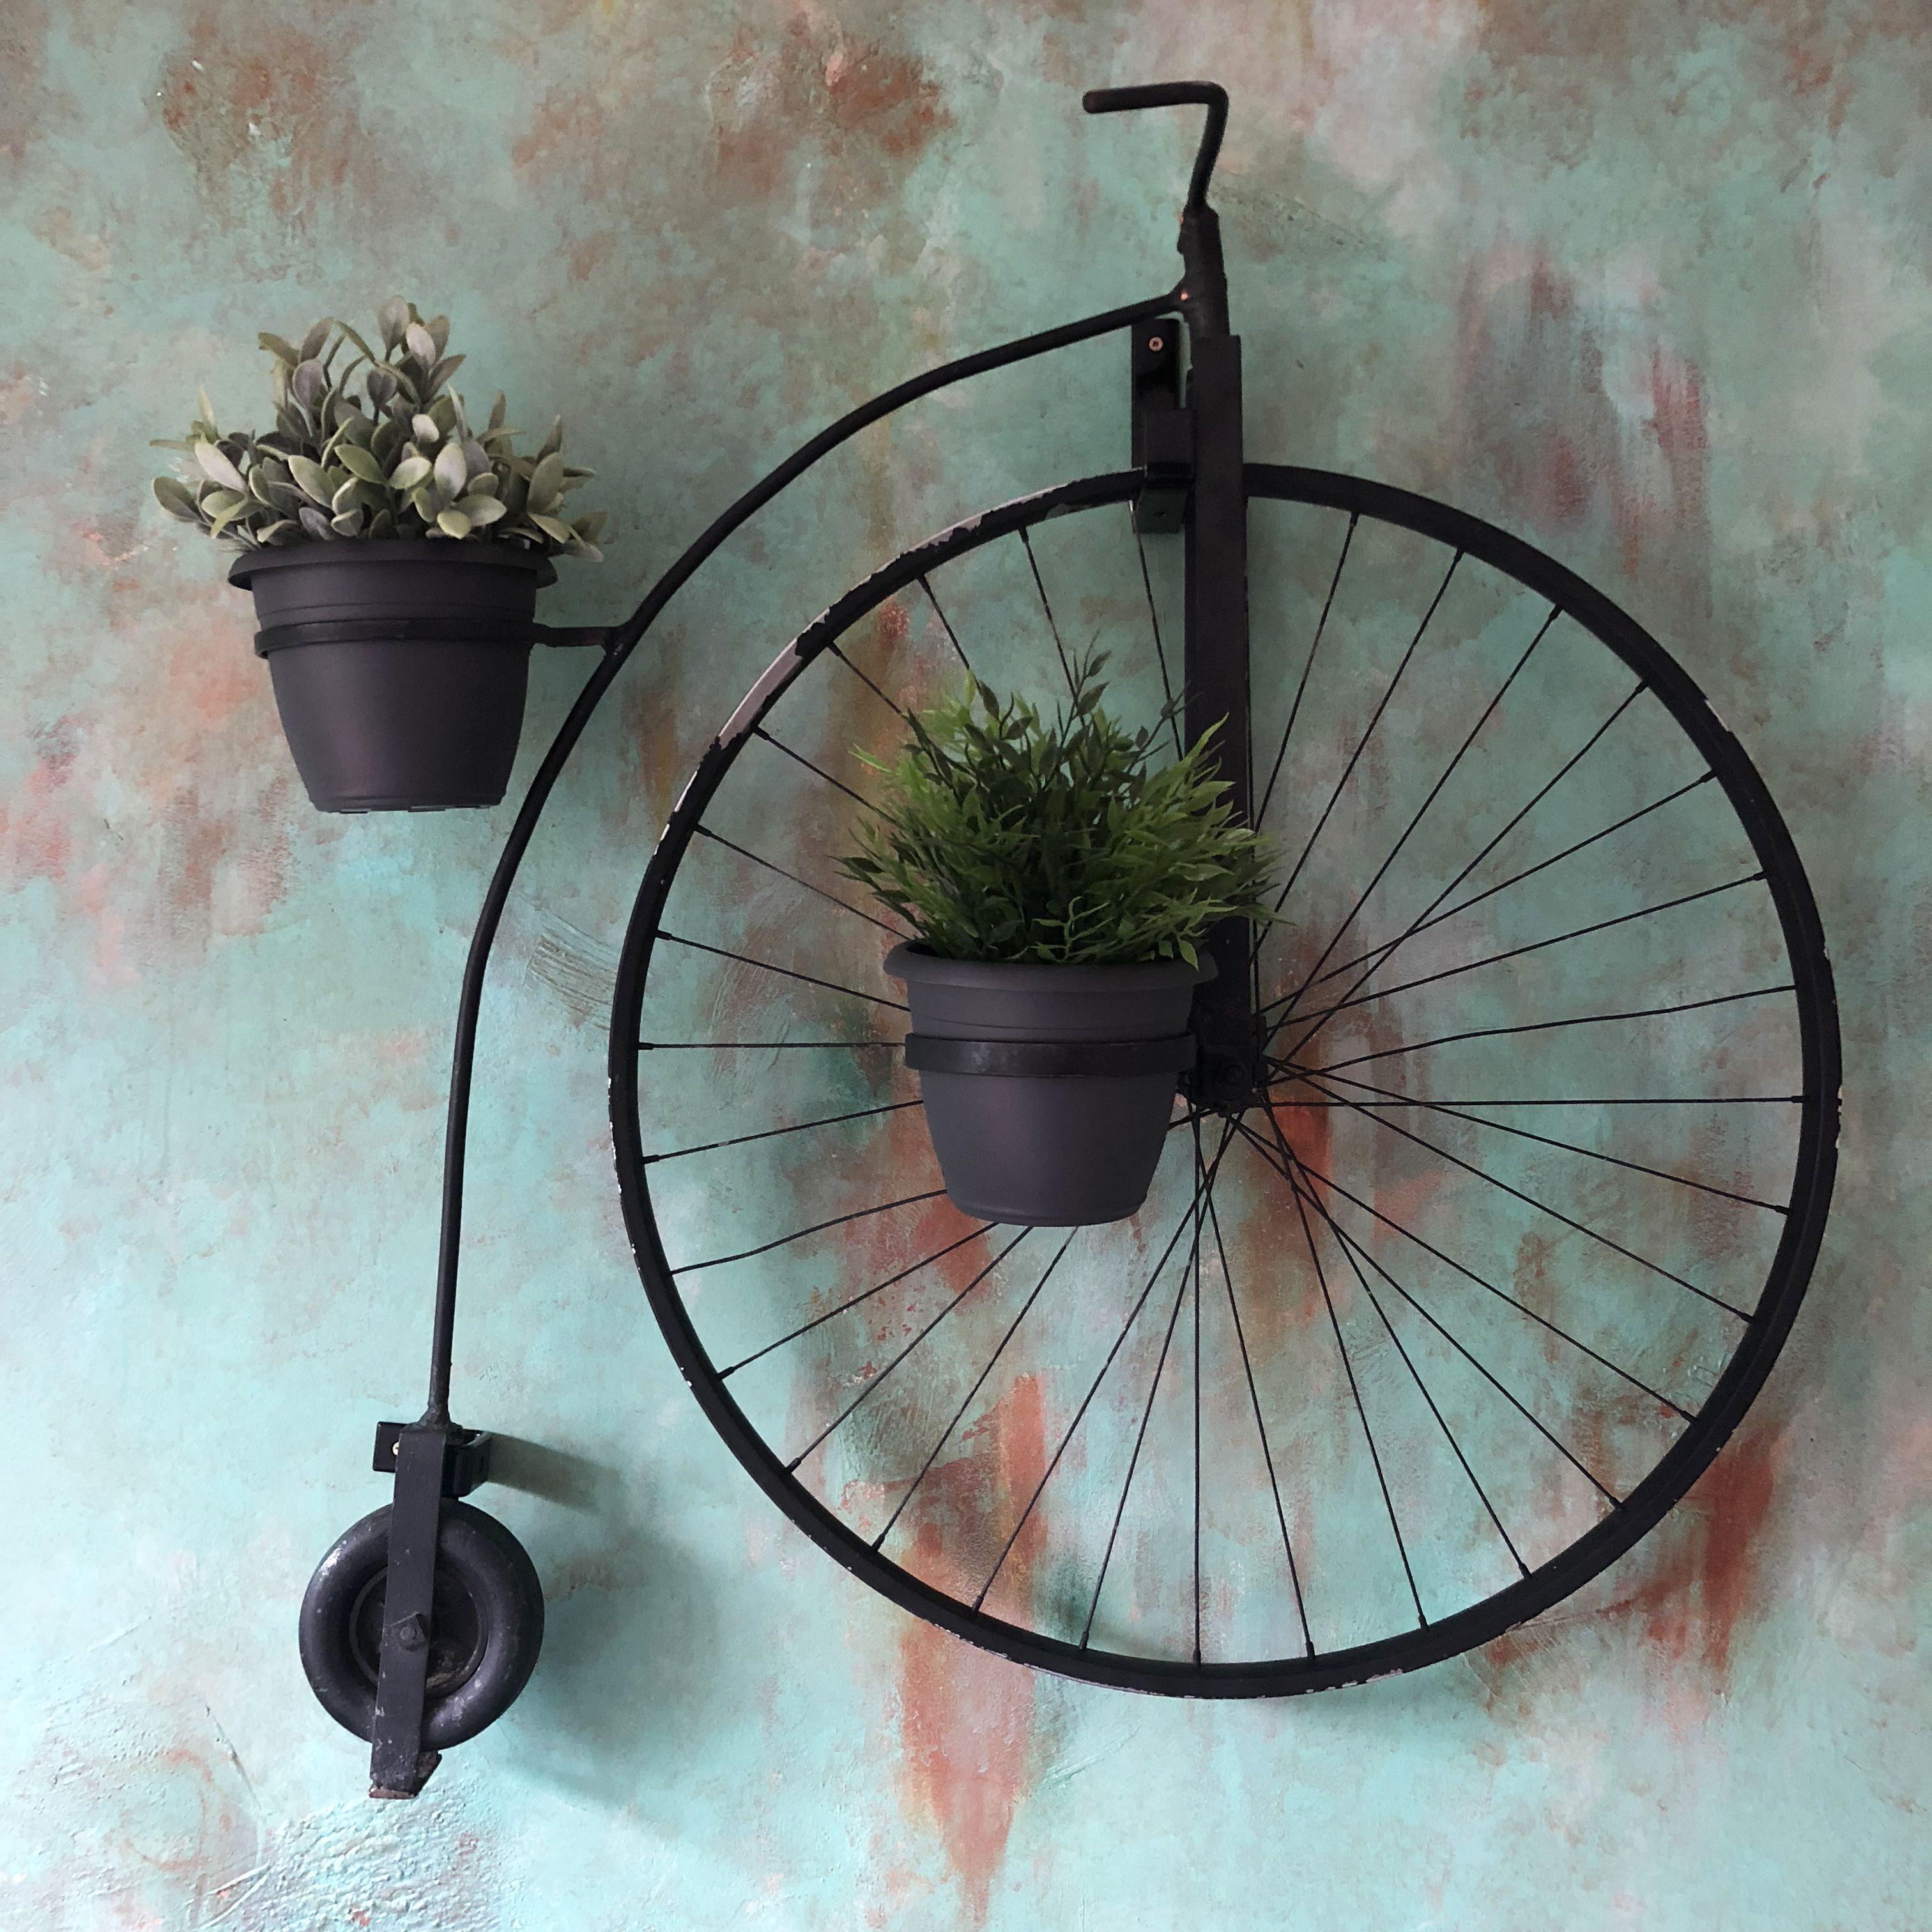 Penny Farthing Bicycle Planter On A Diy Faux Copper Patina Wall